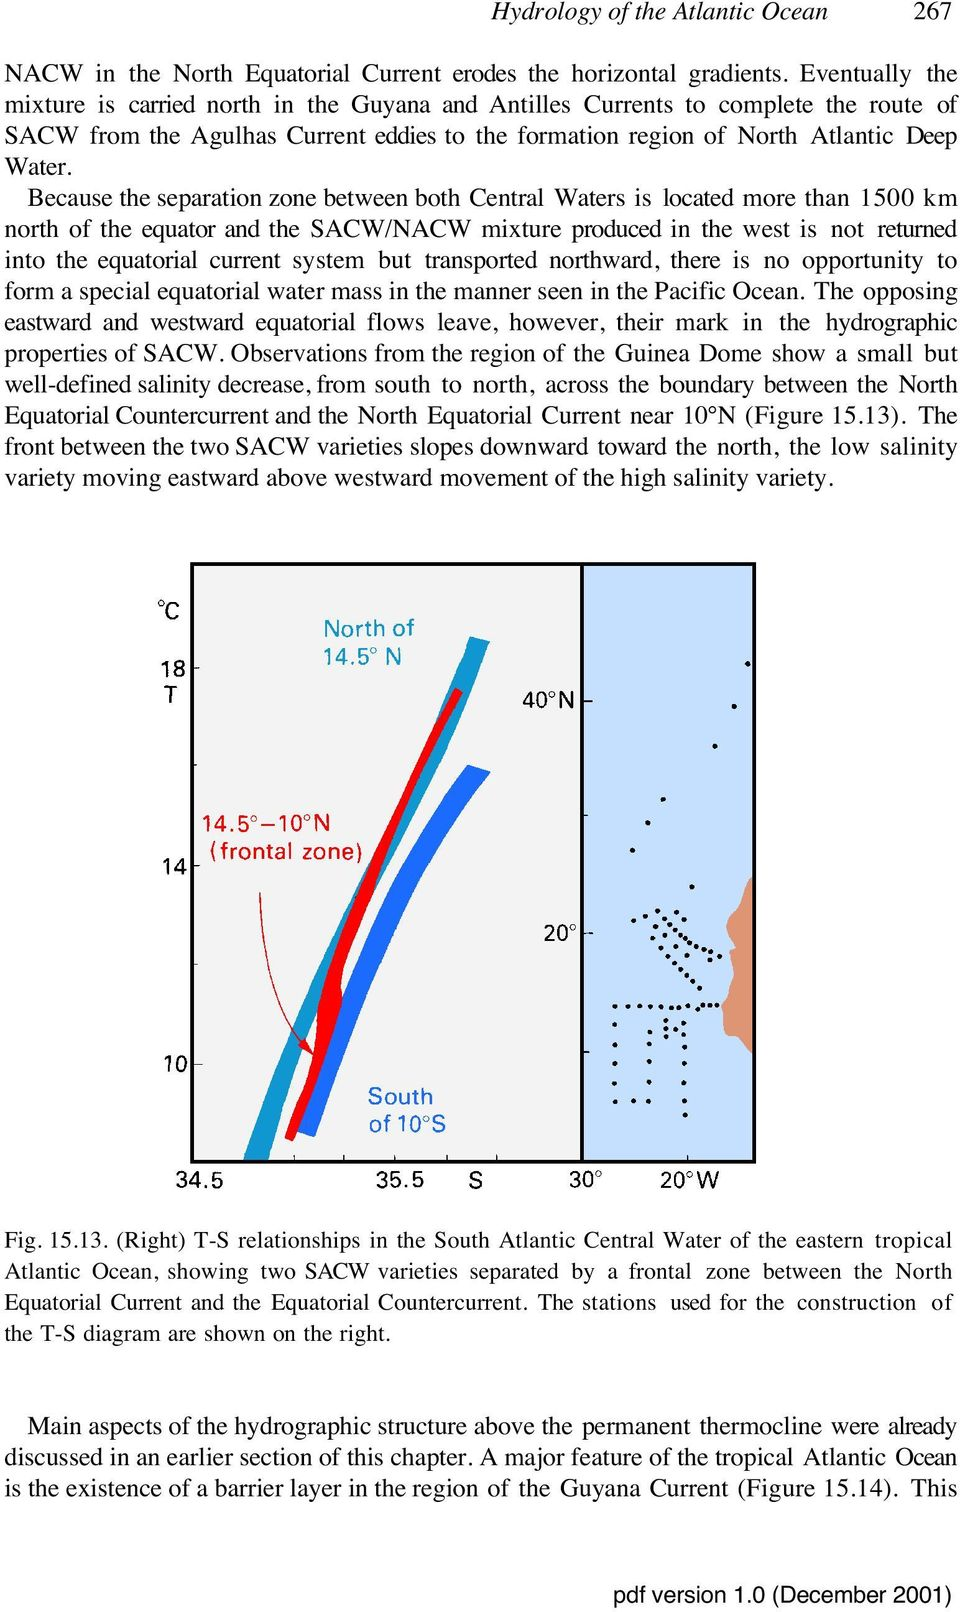 Because the separation zone between both Central Waters is located more than 1500 km north of the equator and the SACW/NACW mixture produced in the west is not returned into the equatorial current